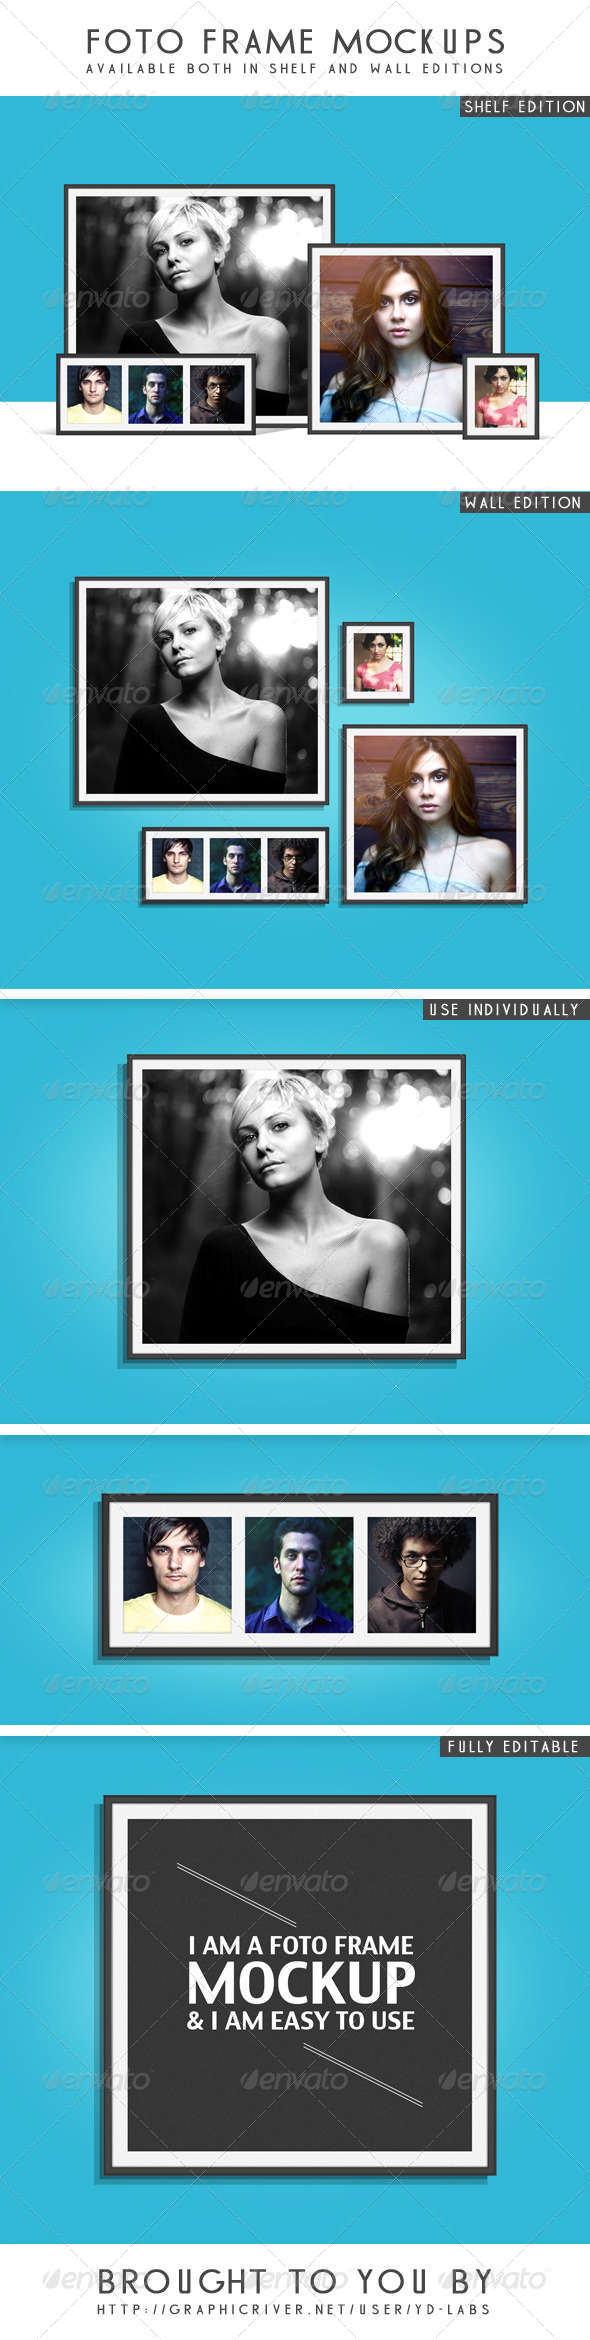 Foto frame Mockups - Photo Templates Graphics